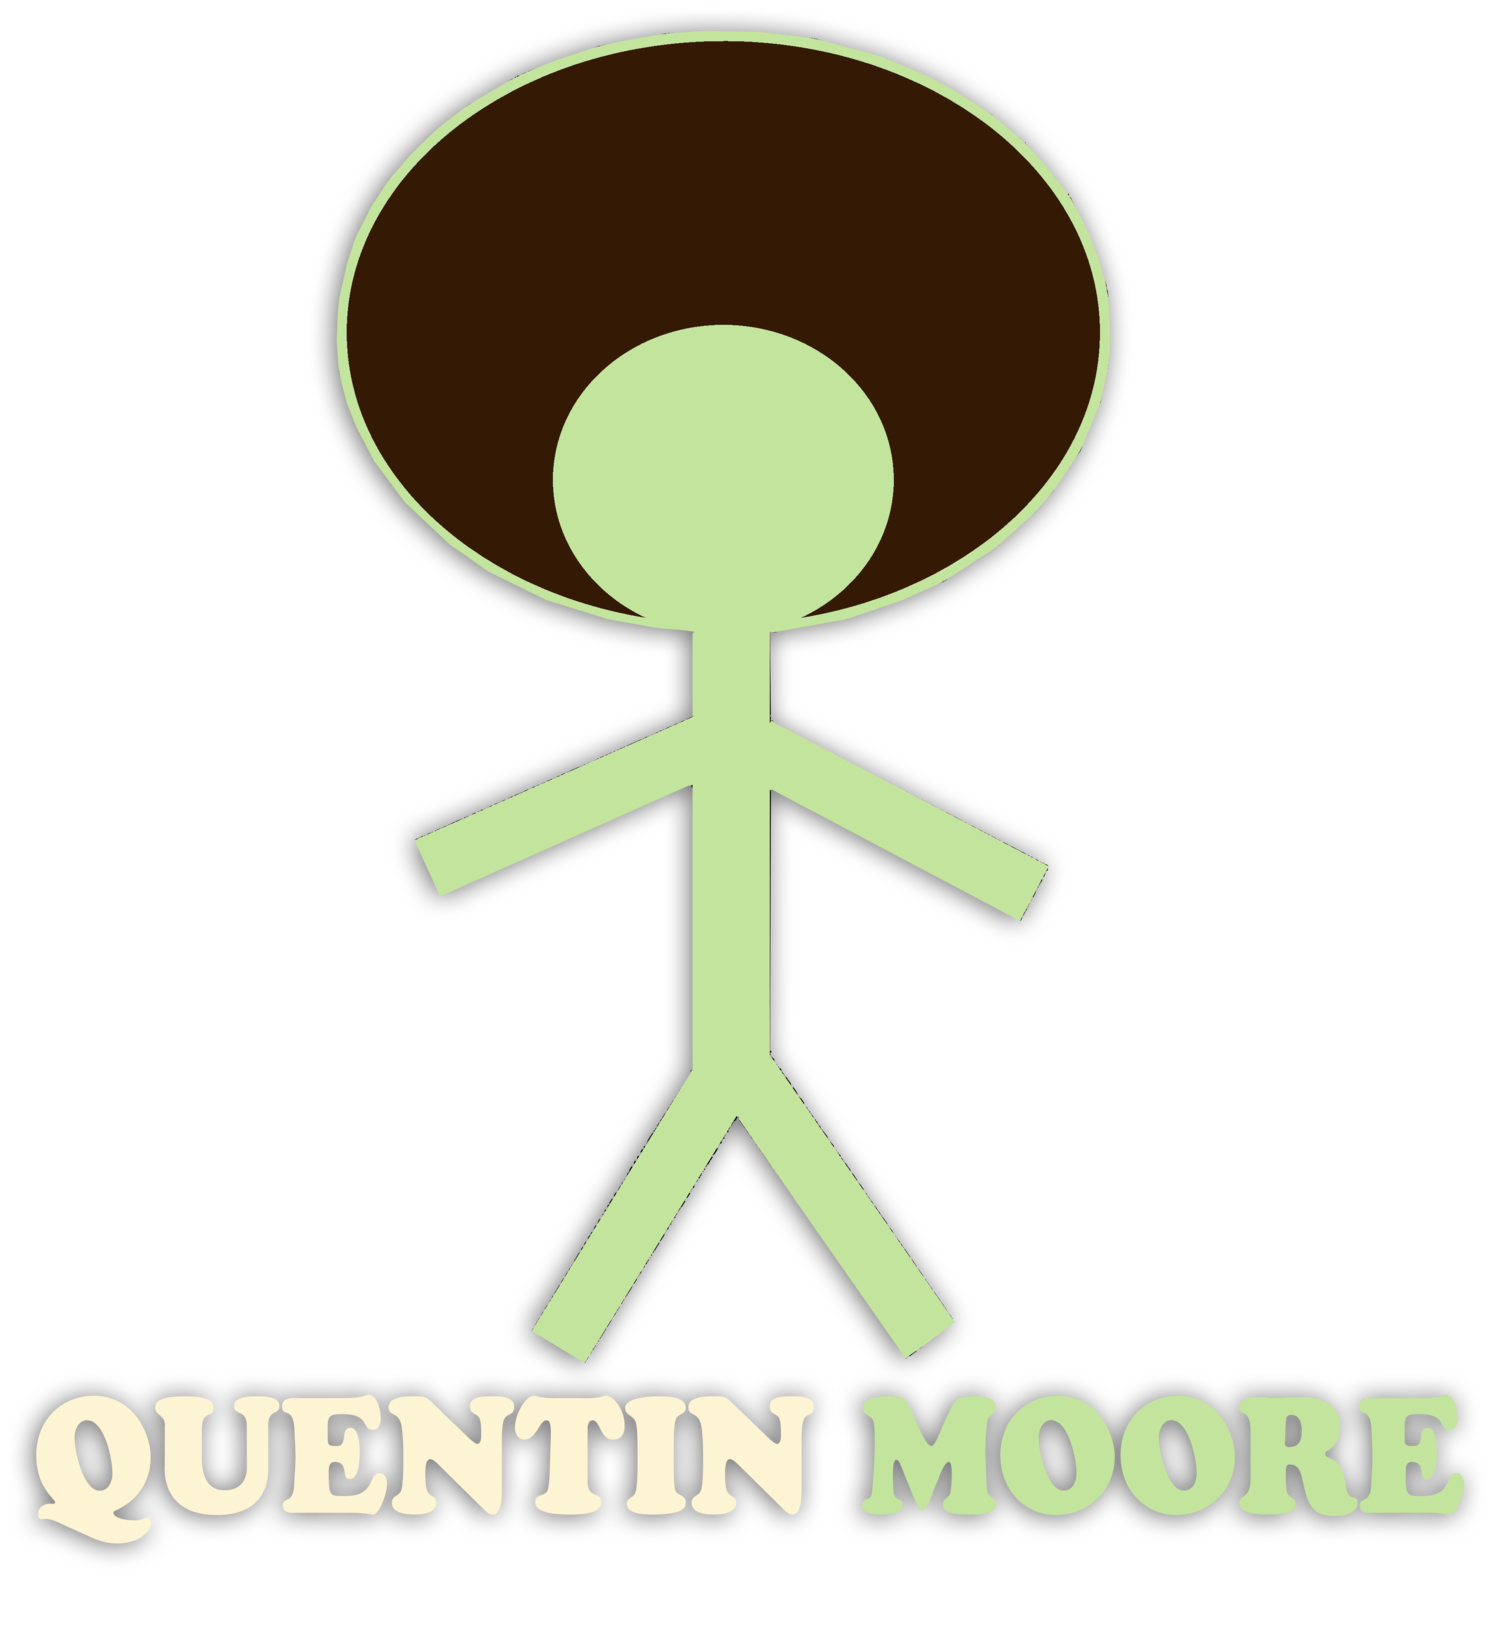 Quentin Moore